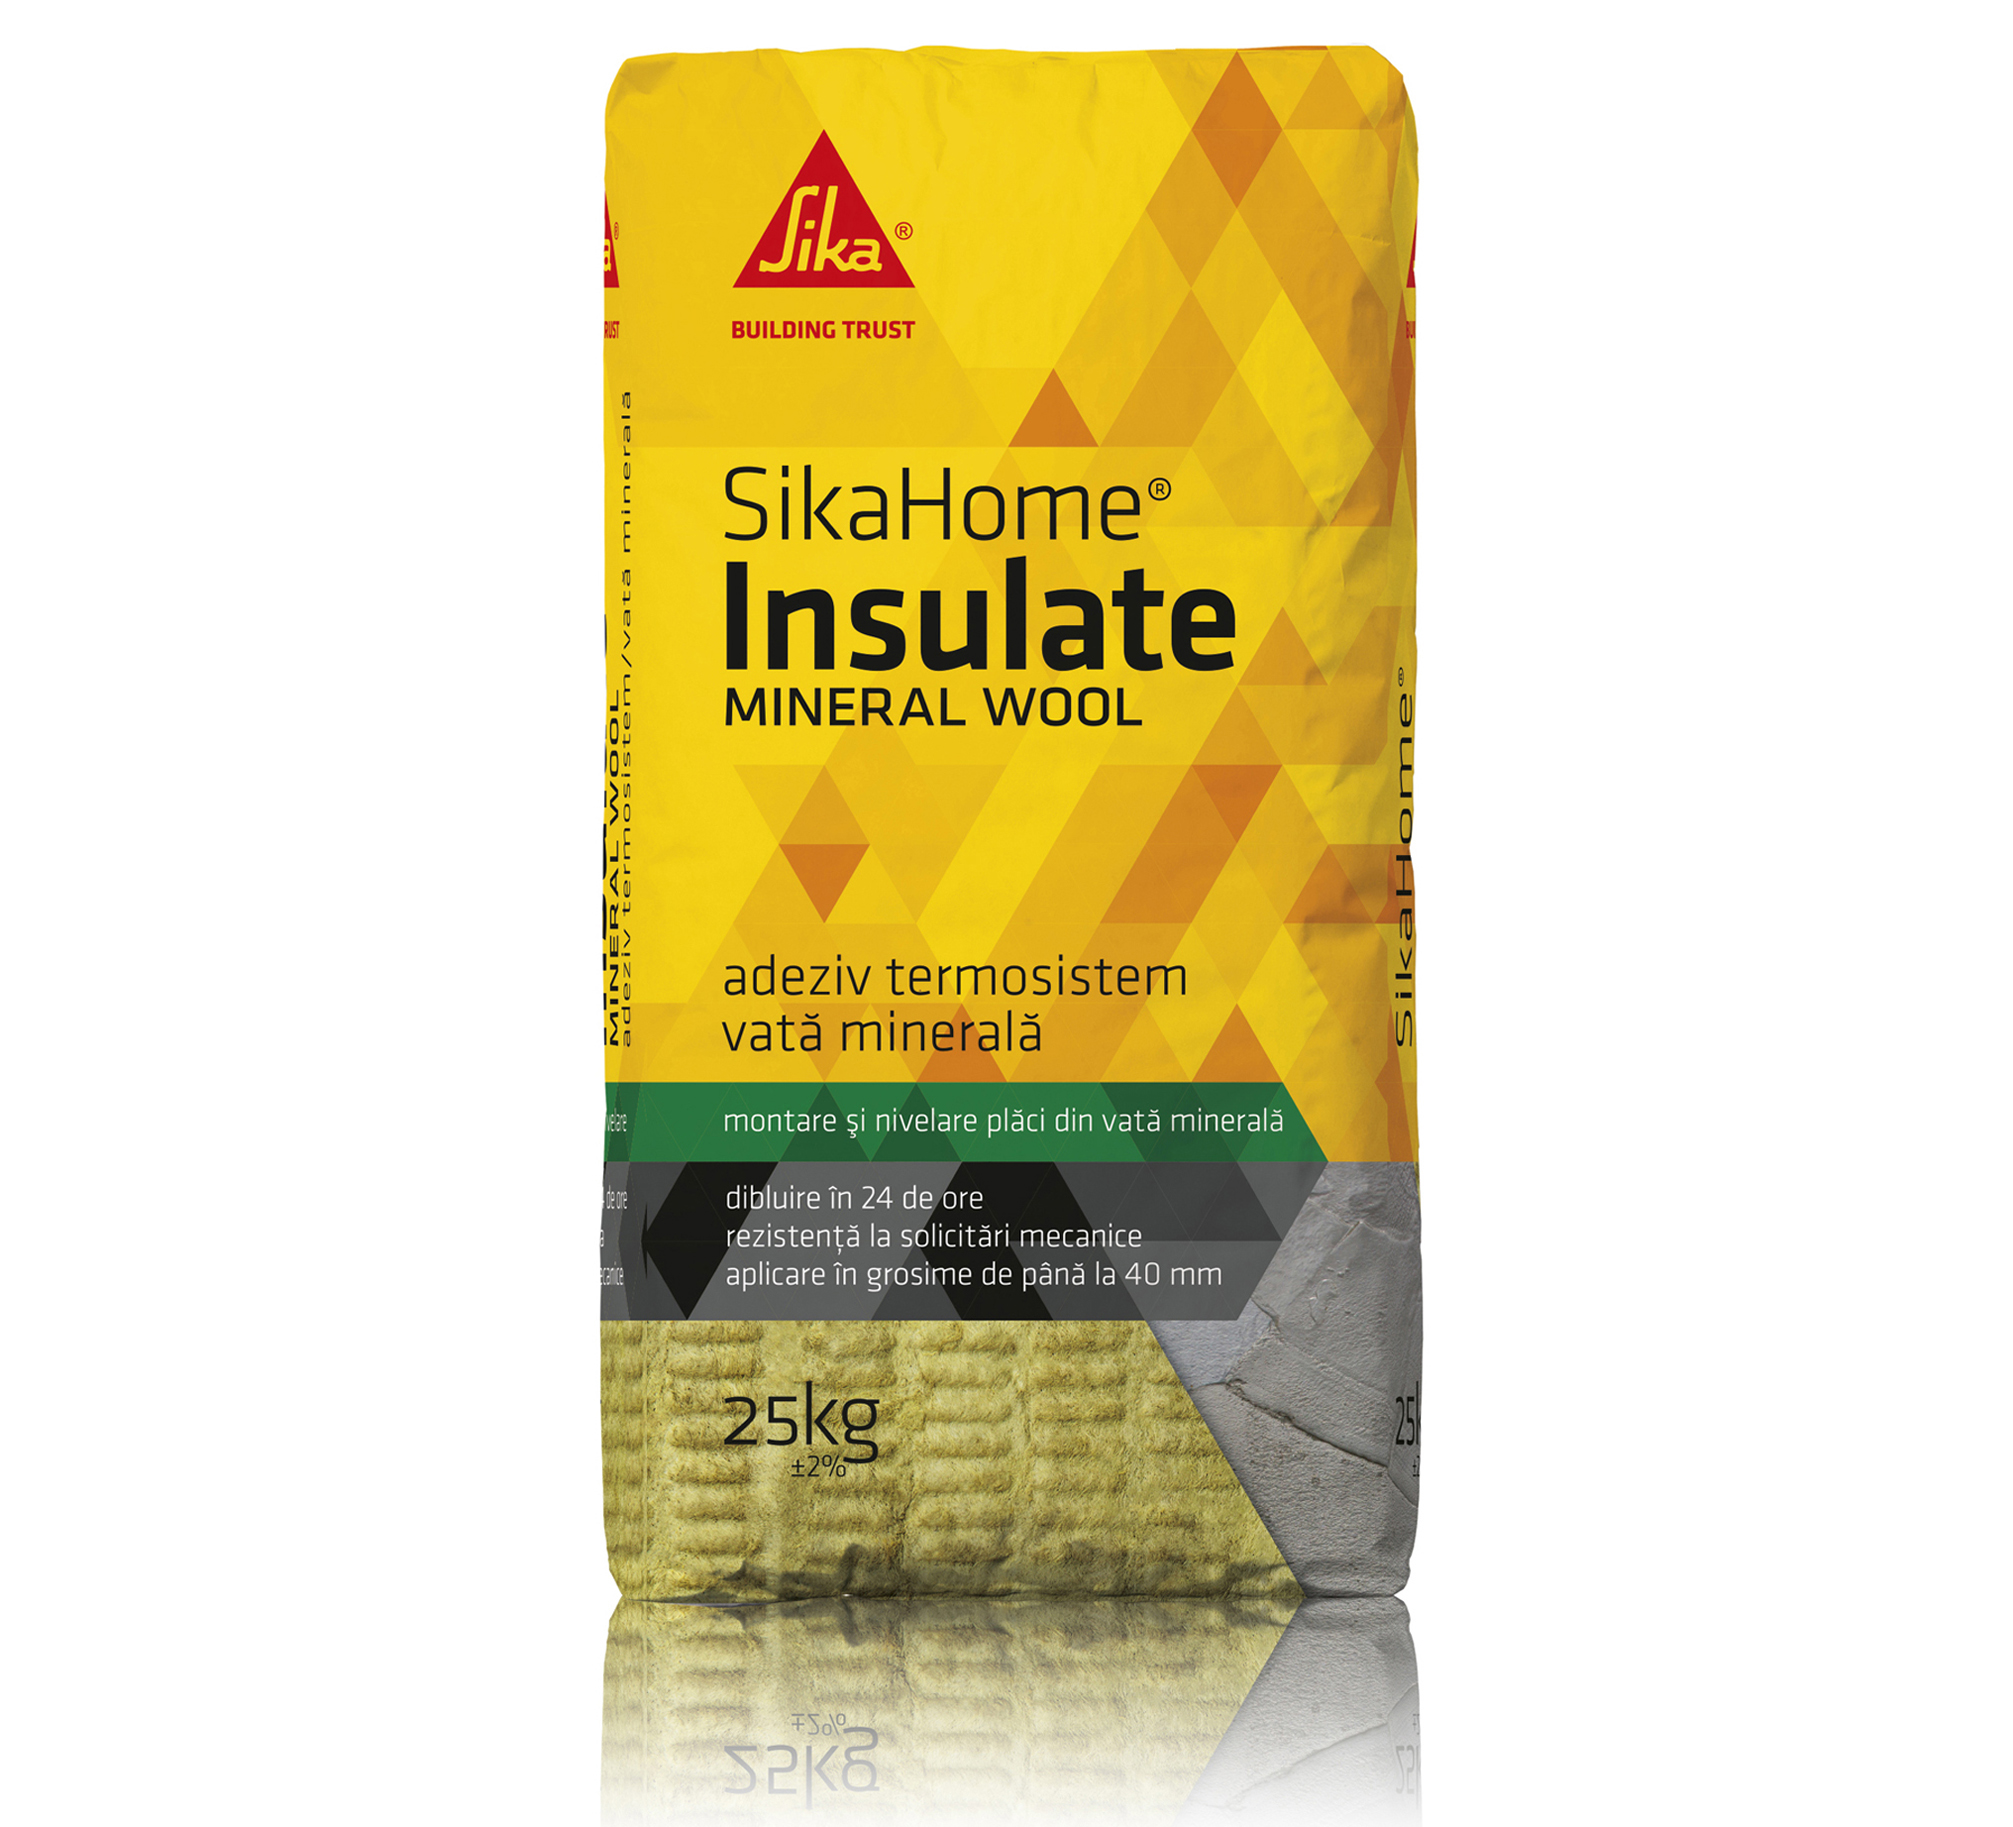 SikaHome Insulate Mineral Wool - SikaHome Insulate Mineral Wool